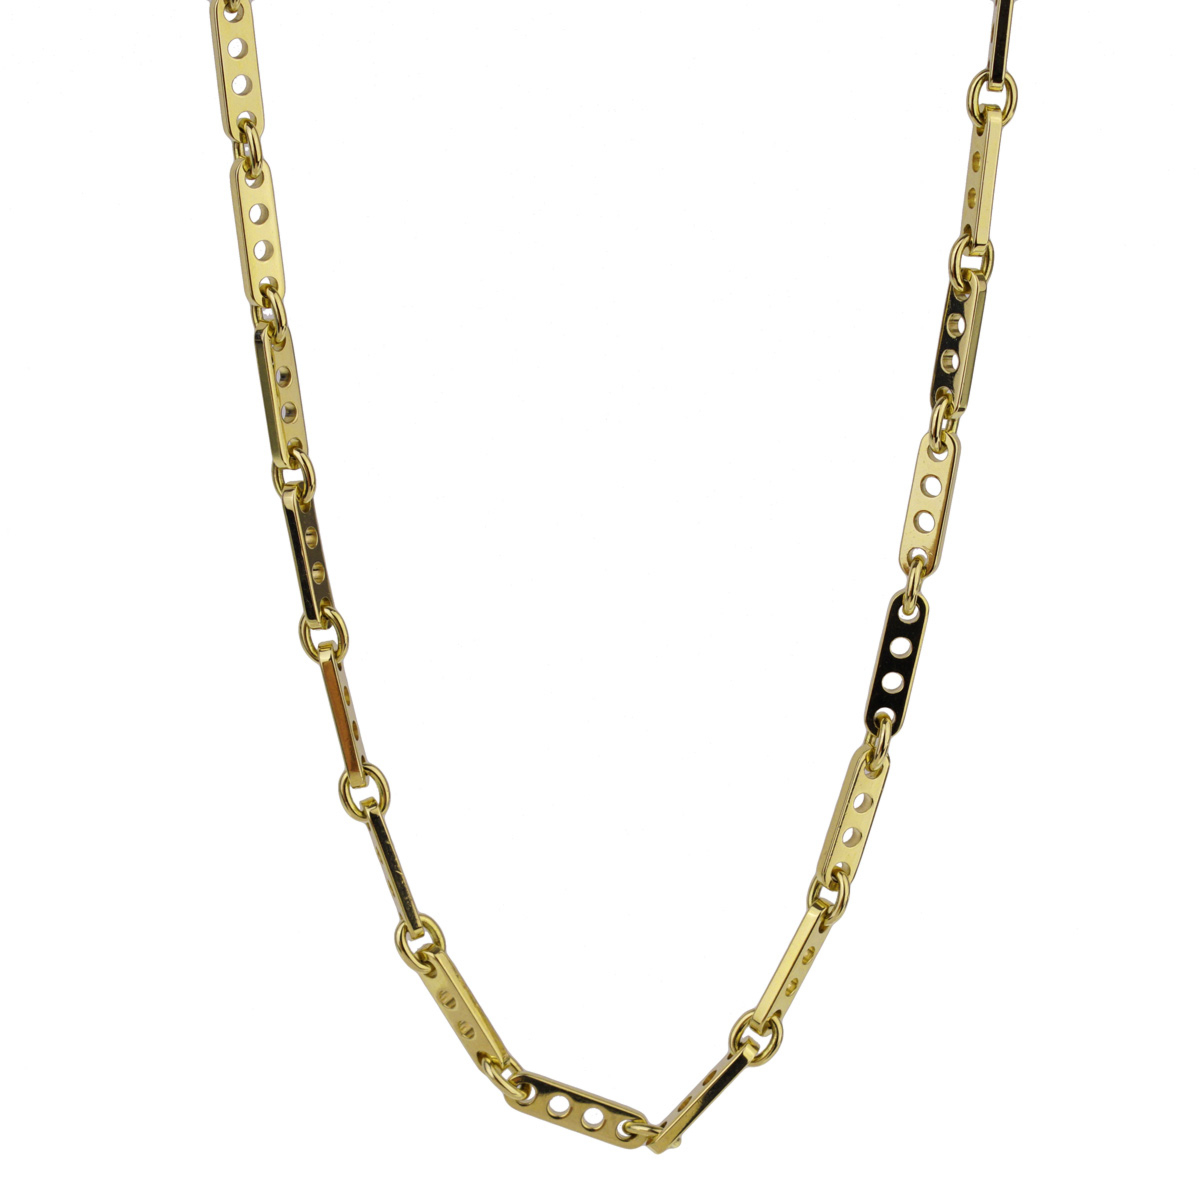 Cartier Vintage 18k Yellow Gold Bar Necklace - Cartier Jewelry